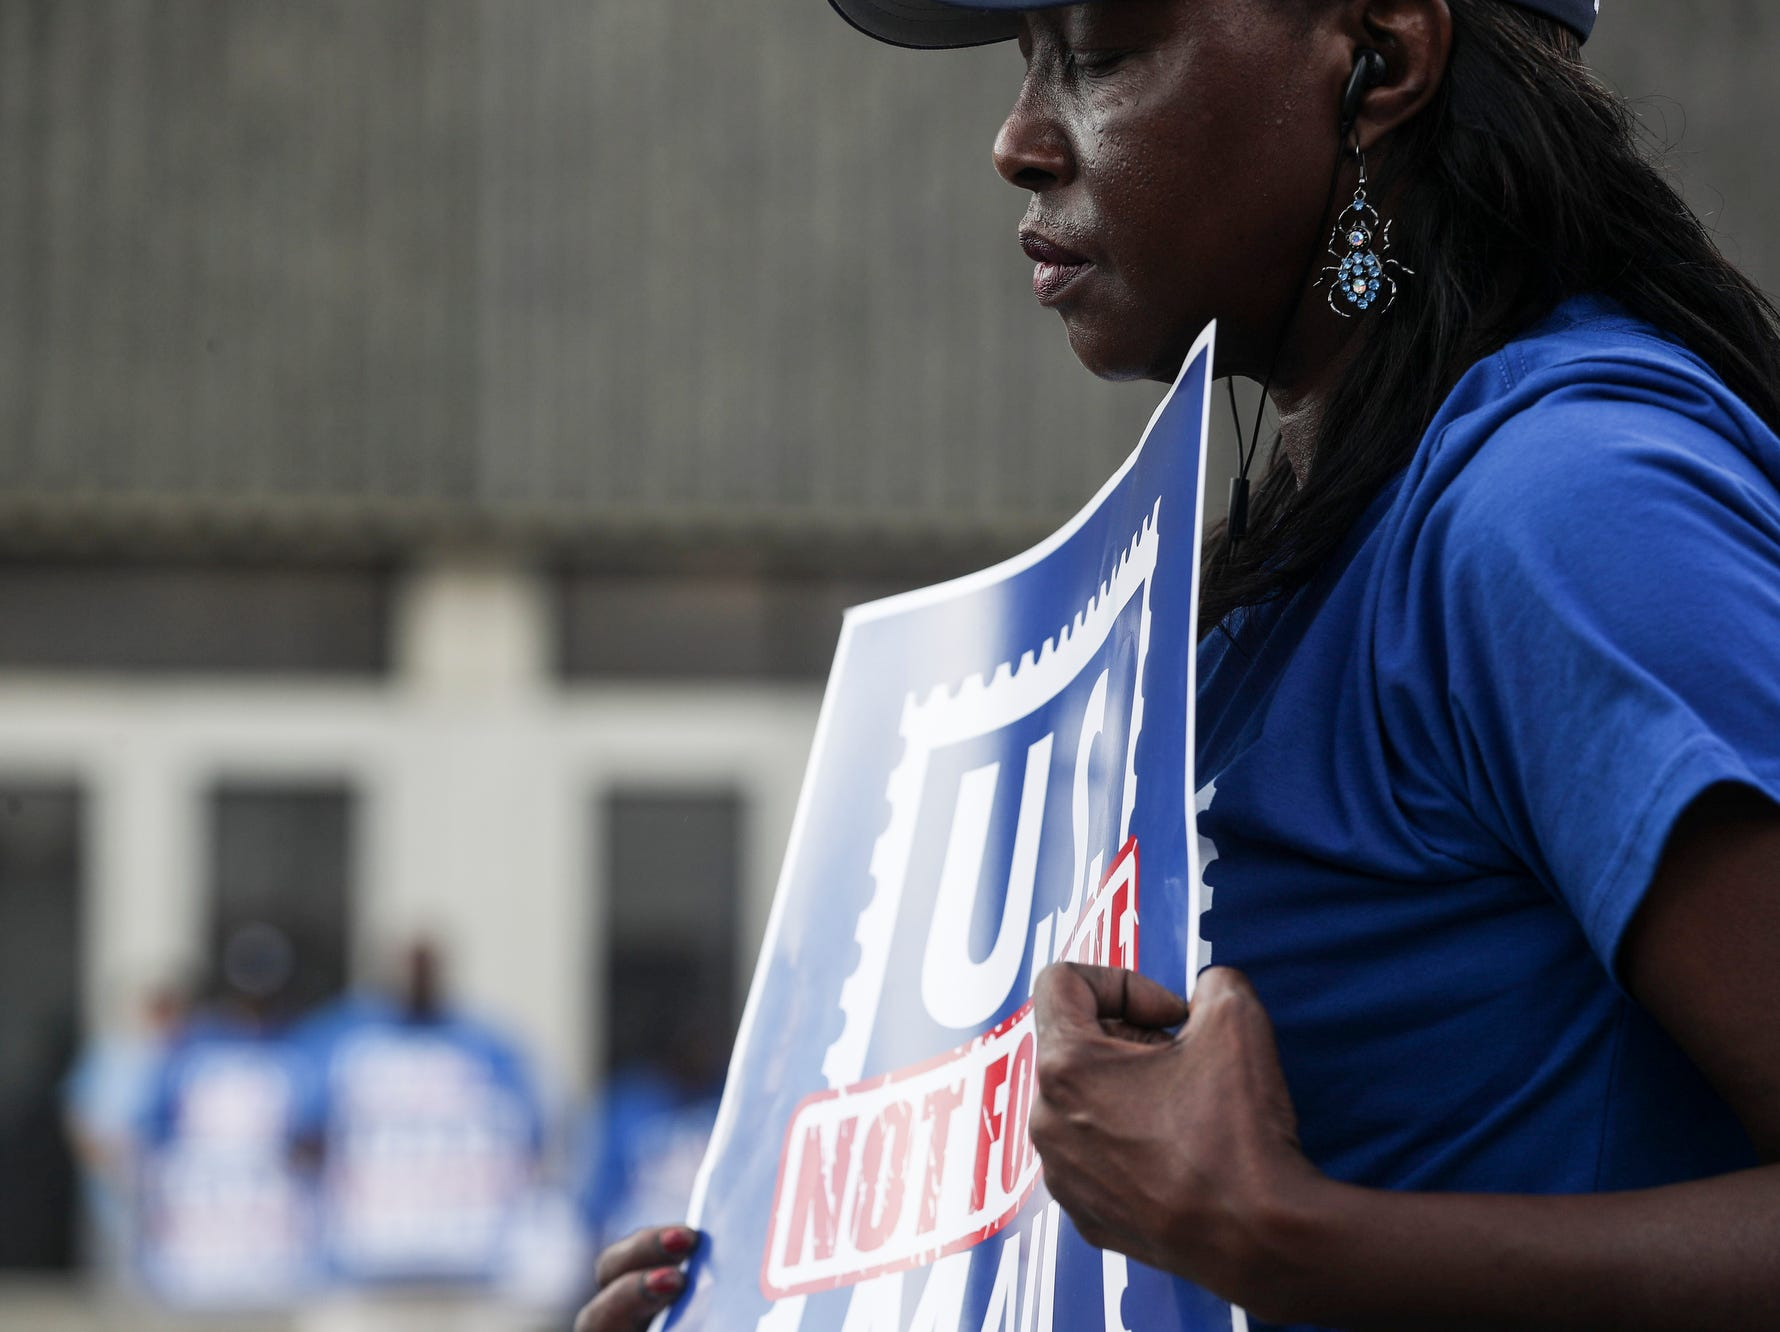 October 08 2018 - Betty Stricklen pauses during a prayer while U.S. Postal Service employees, joined by community supporters, rallied on Monday in front of the Memphis Post Office. Participants sounded an alarm against a proposal announced in June by the White House's Office of Management and Budget to privatize the U.S. Postal Service.